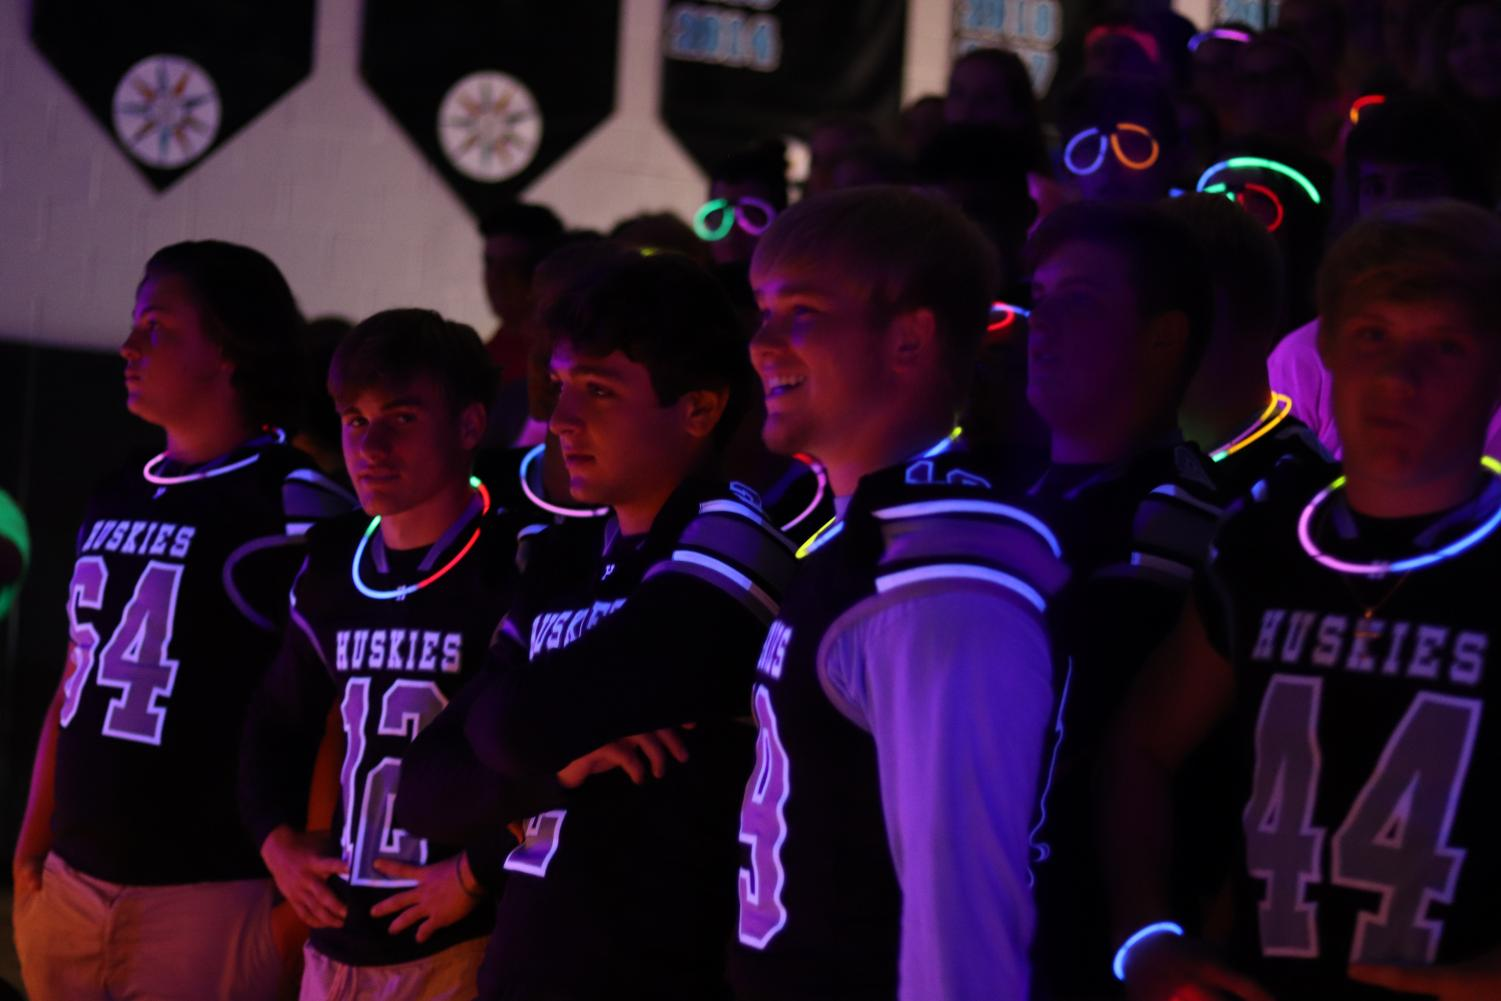 Varsity football players during the glow-in-the-dark pep rally